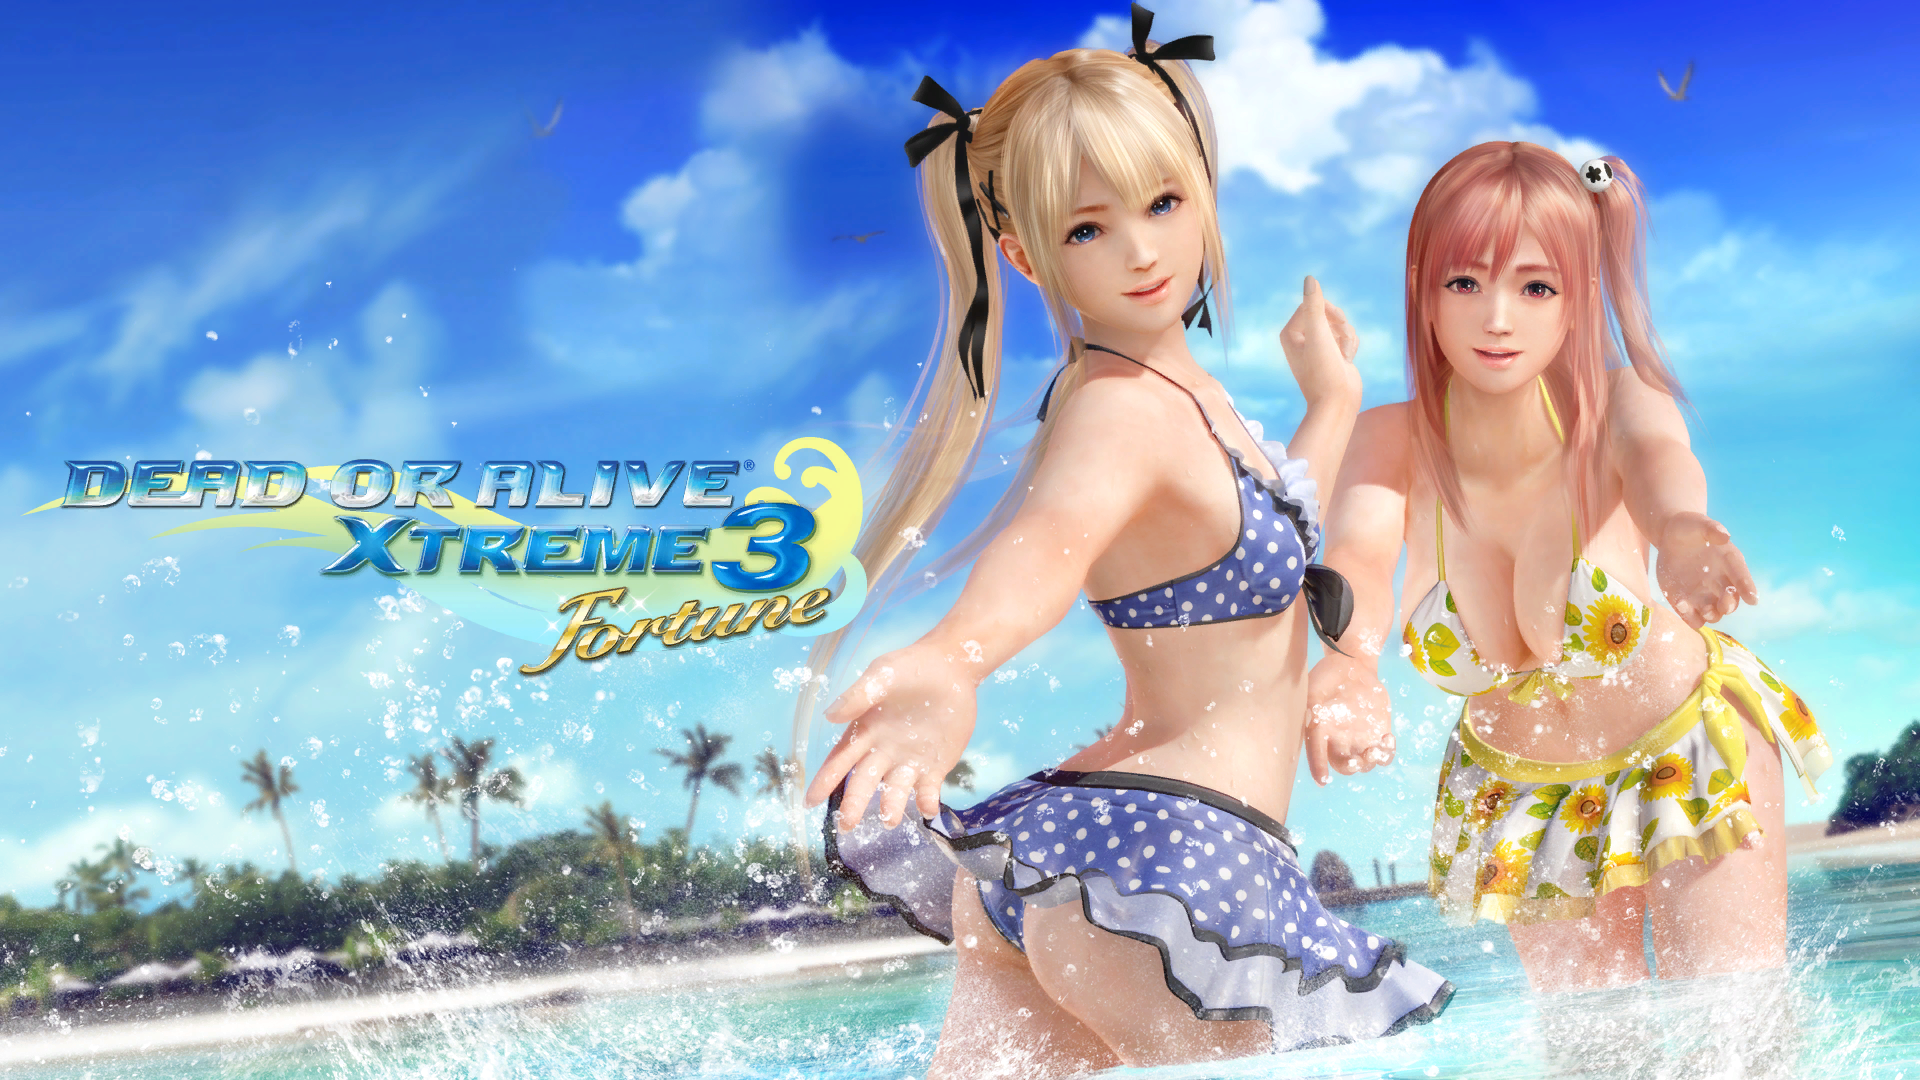 Dead Or Alive Xtreme 3 Fortune 1080p Wallpaper By Sleeper77 On